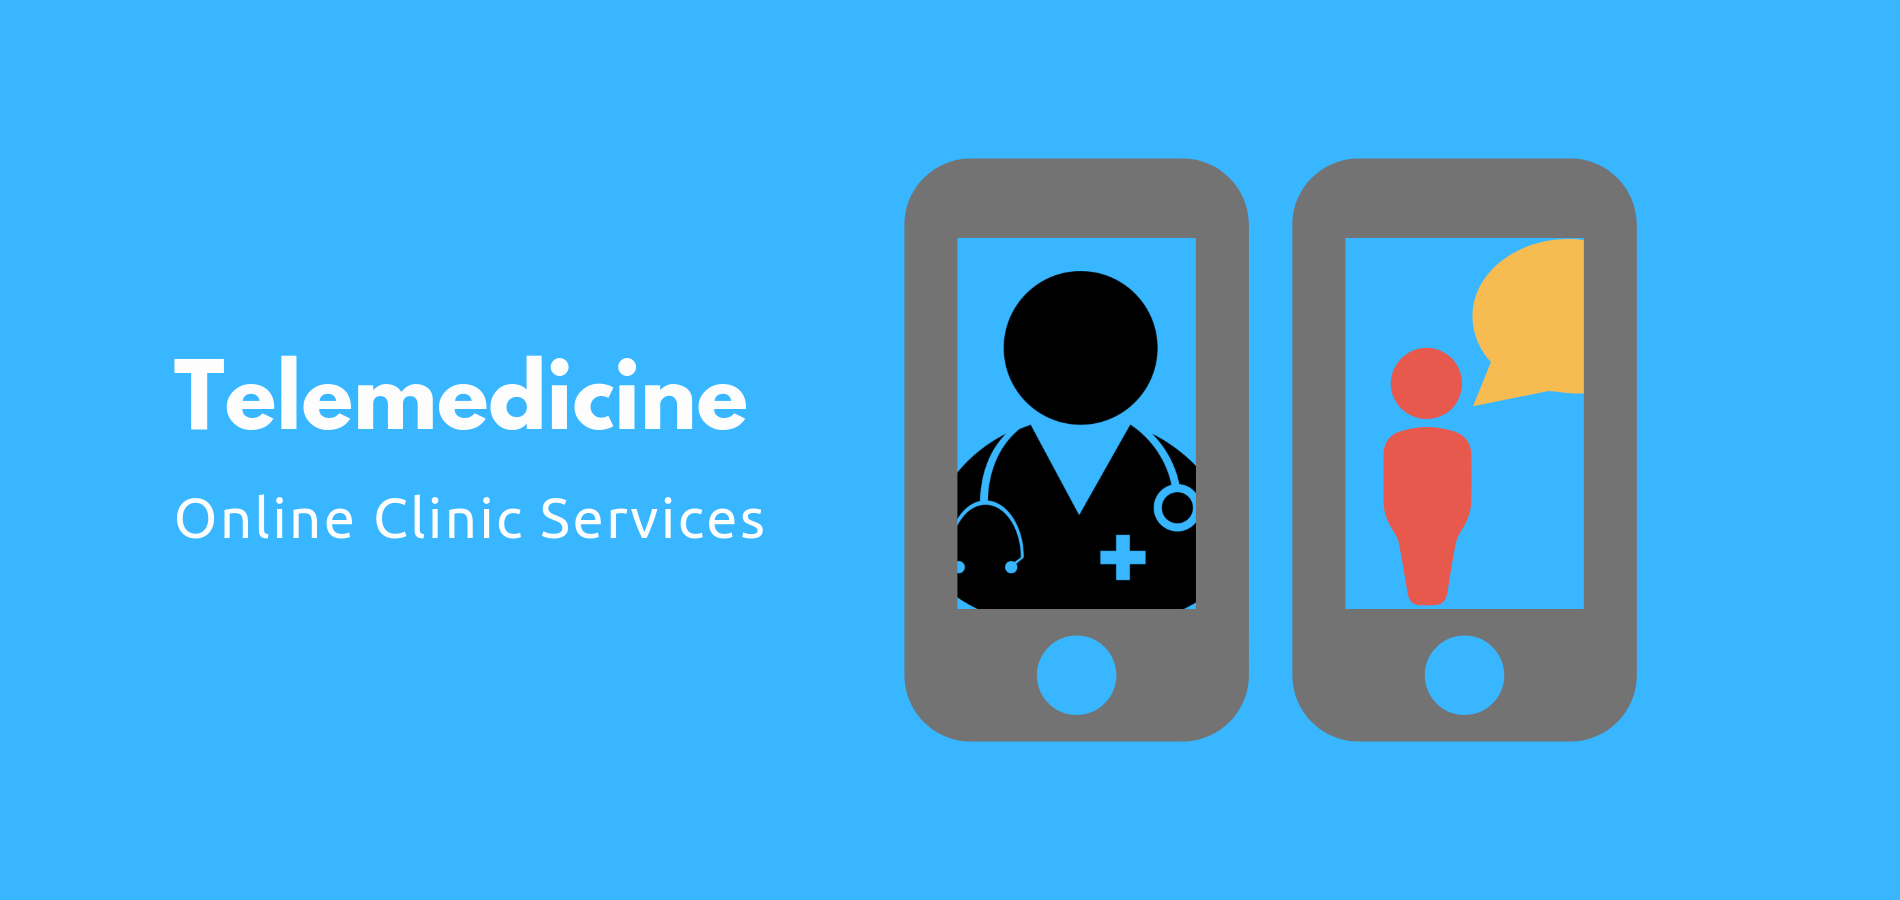 What you should know about Telemedicine online clinic